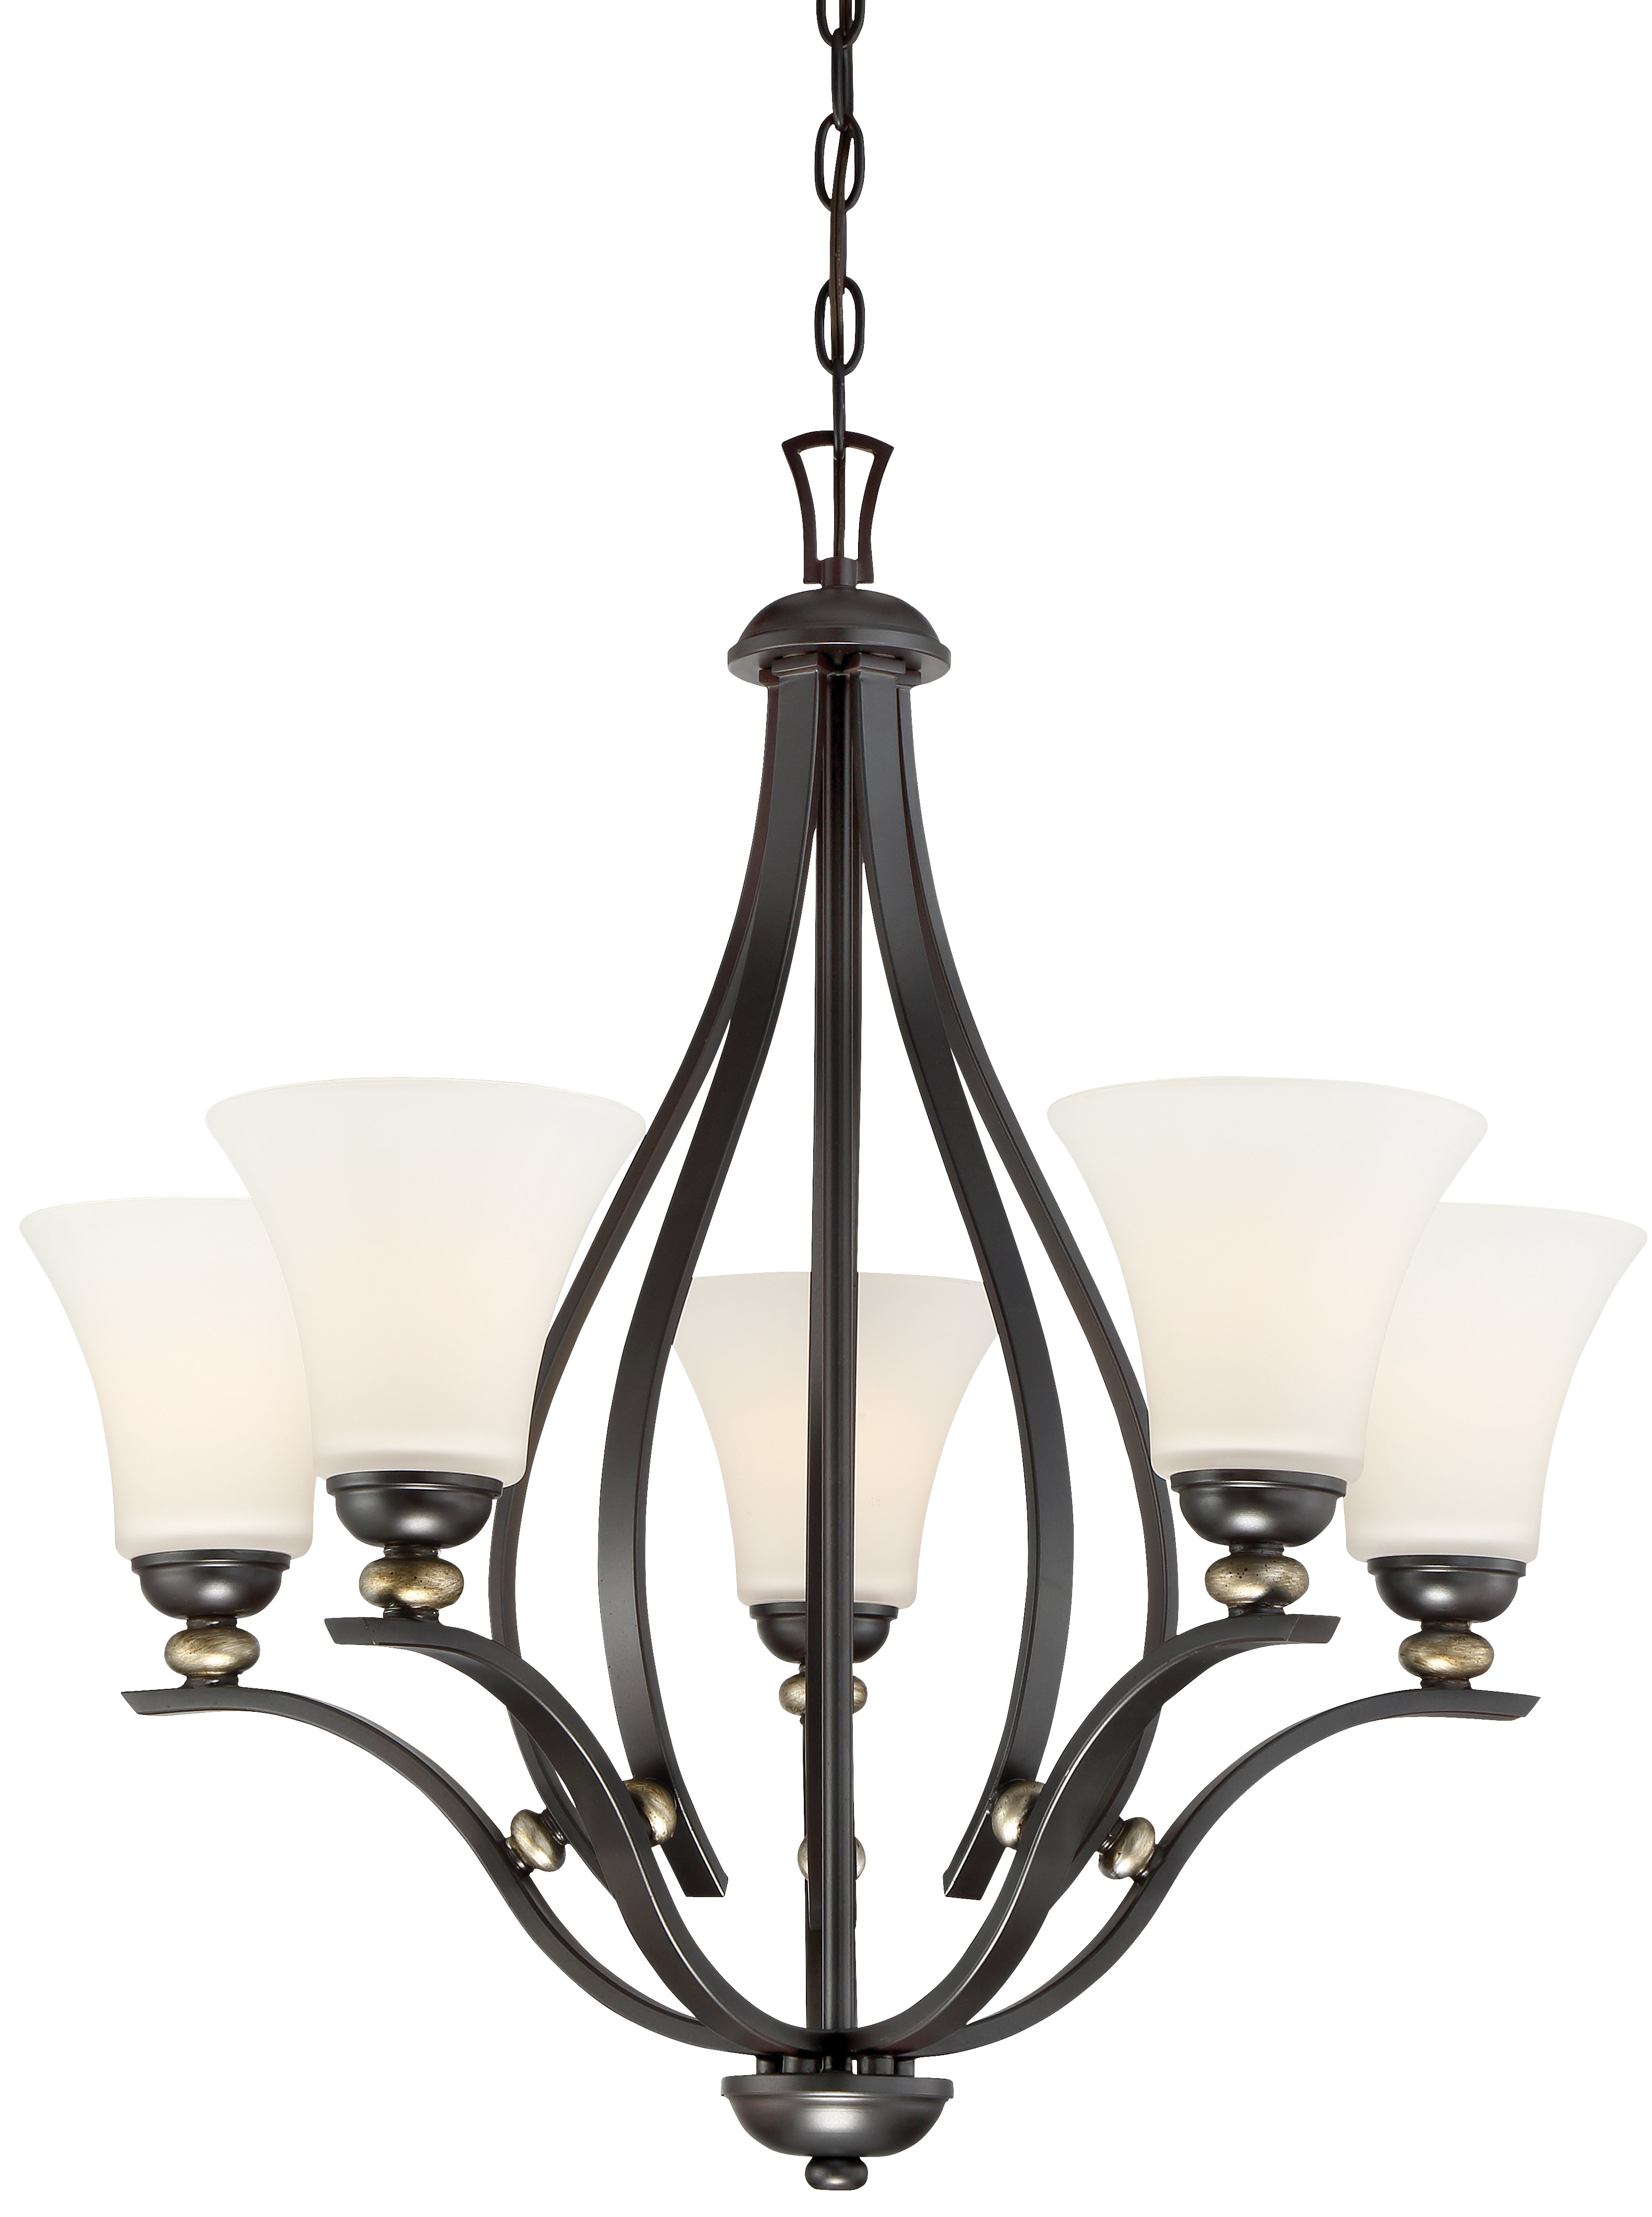 Suki 5 Light Shaded Chandelier | Wayfair Regarding Suki 5 Light Shaded Chandeliers (View 20 of 30)